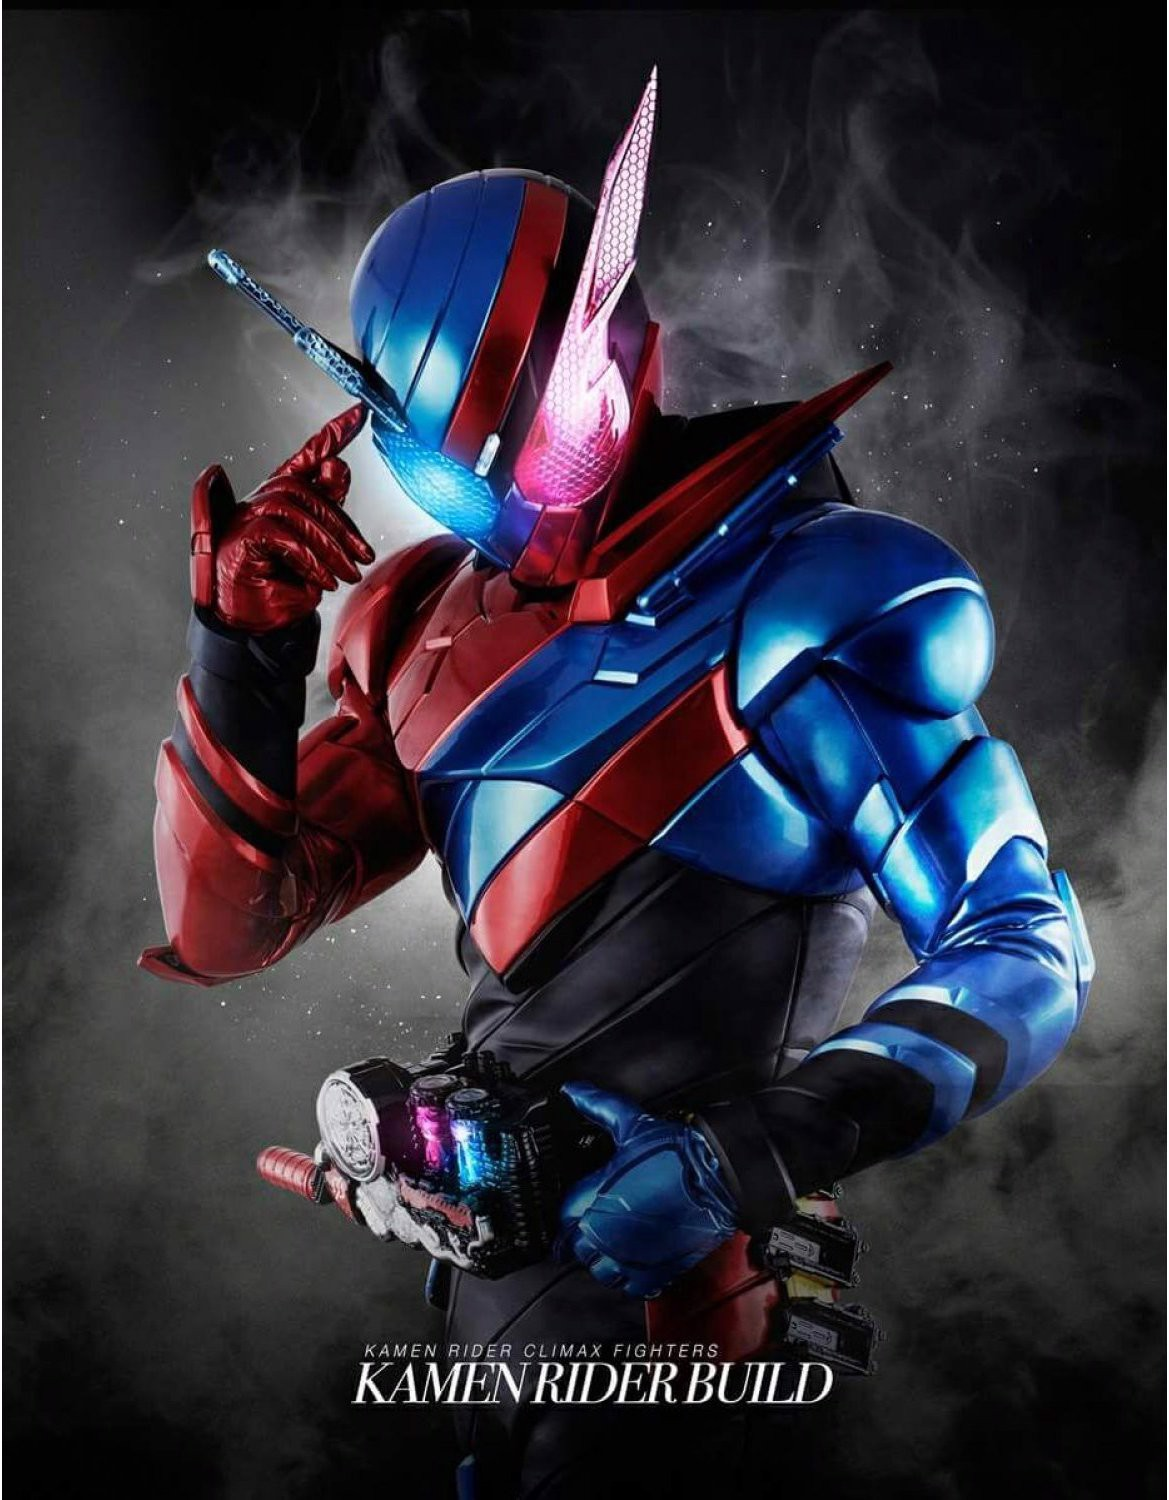 533 - Kamen Rider: Climax Fighters